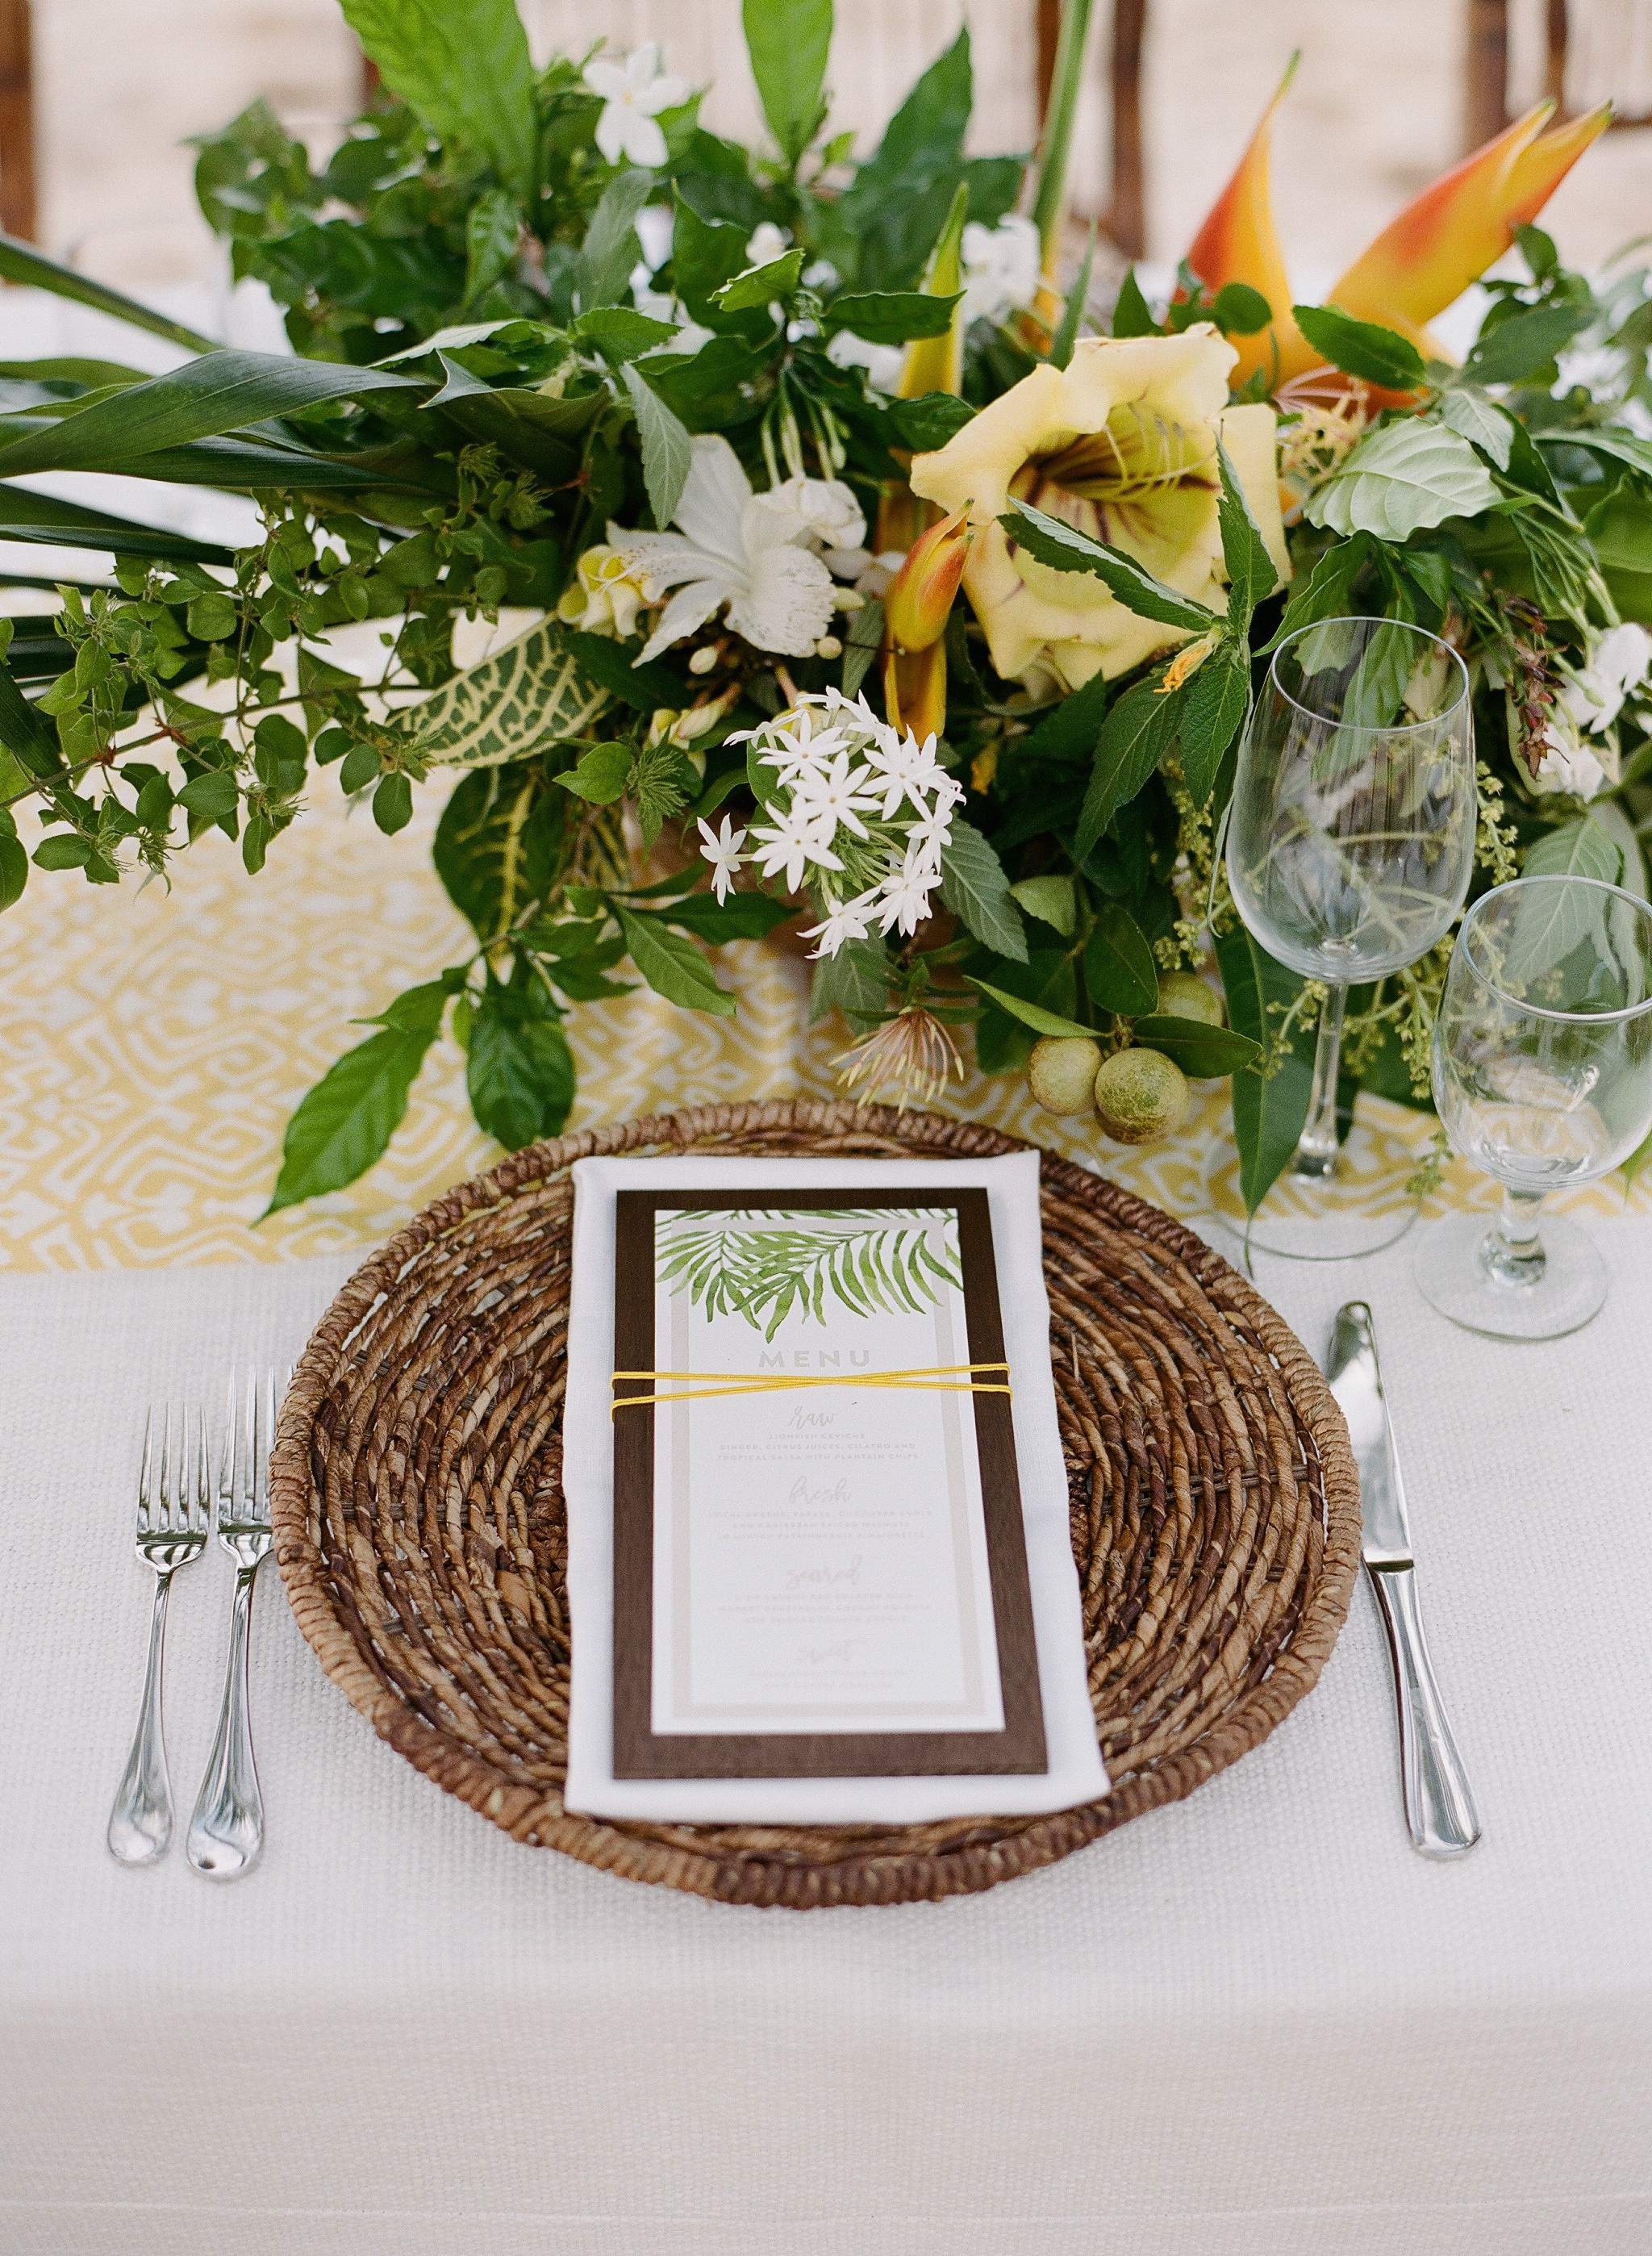 Wicker place setting, tropical bloom centerpiece and menu card at beach reception table in Montego Bay, Jamaica; Sylvie Gil Photography